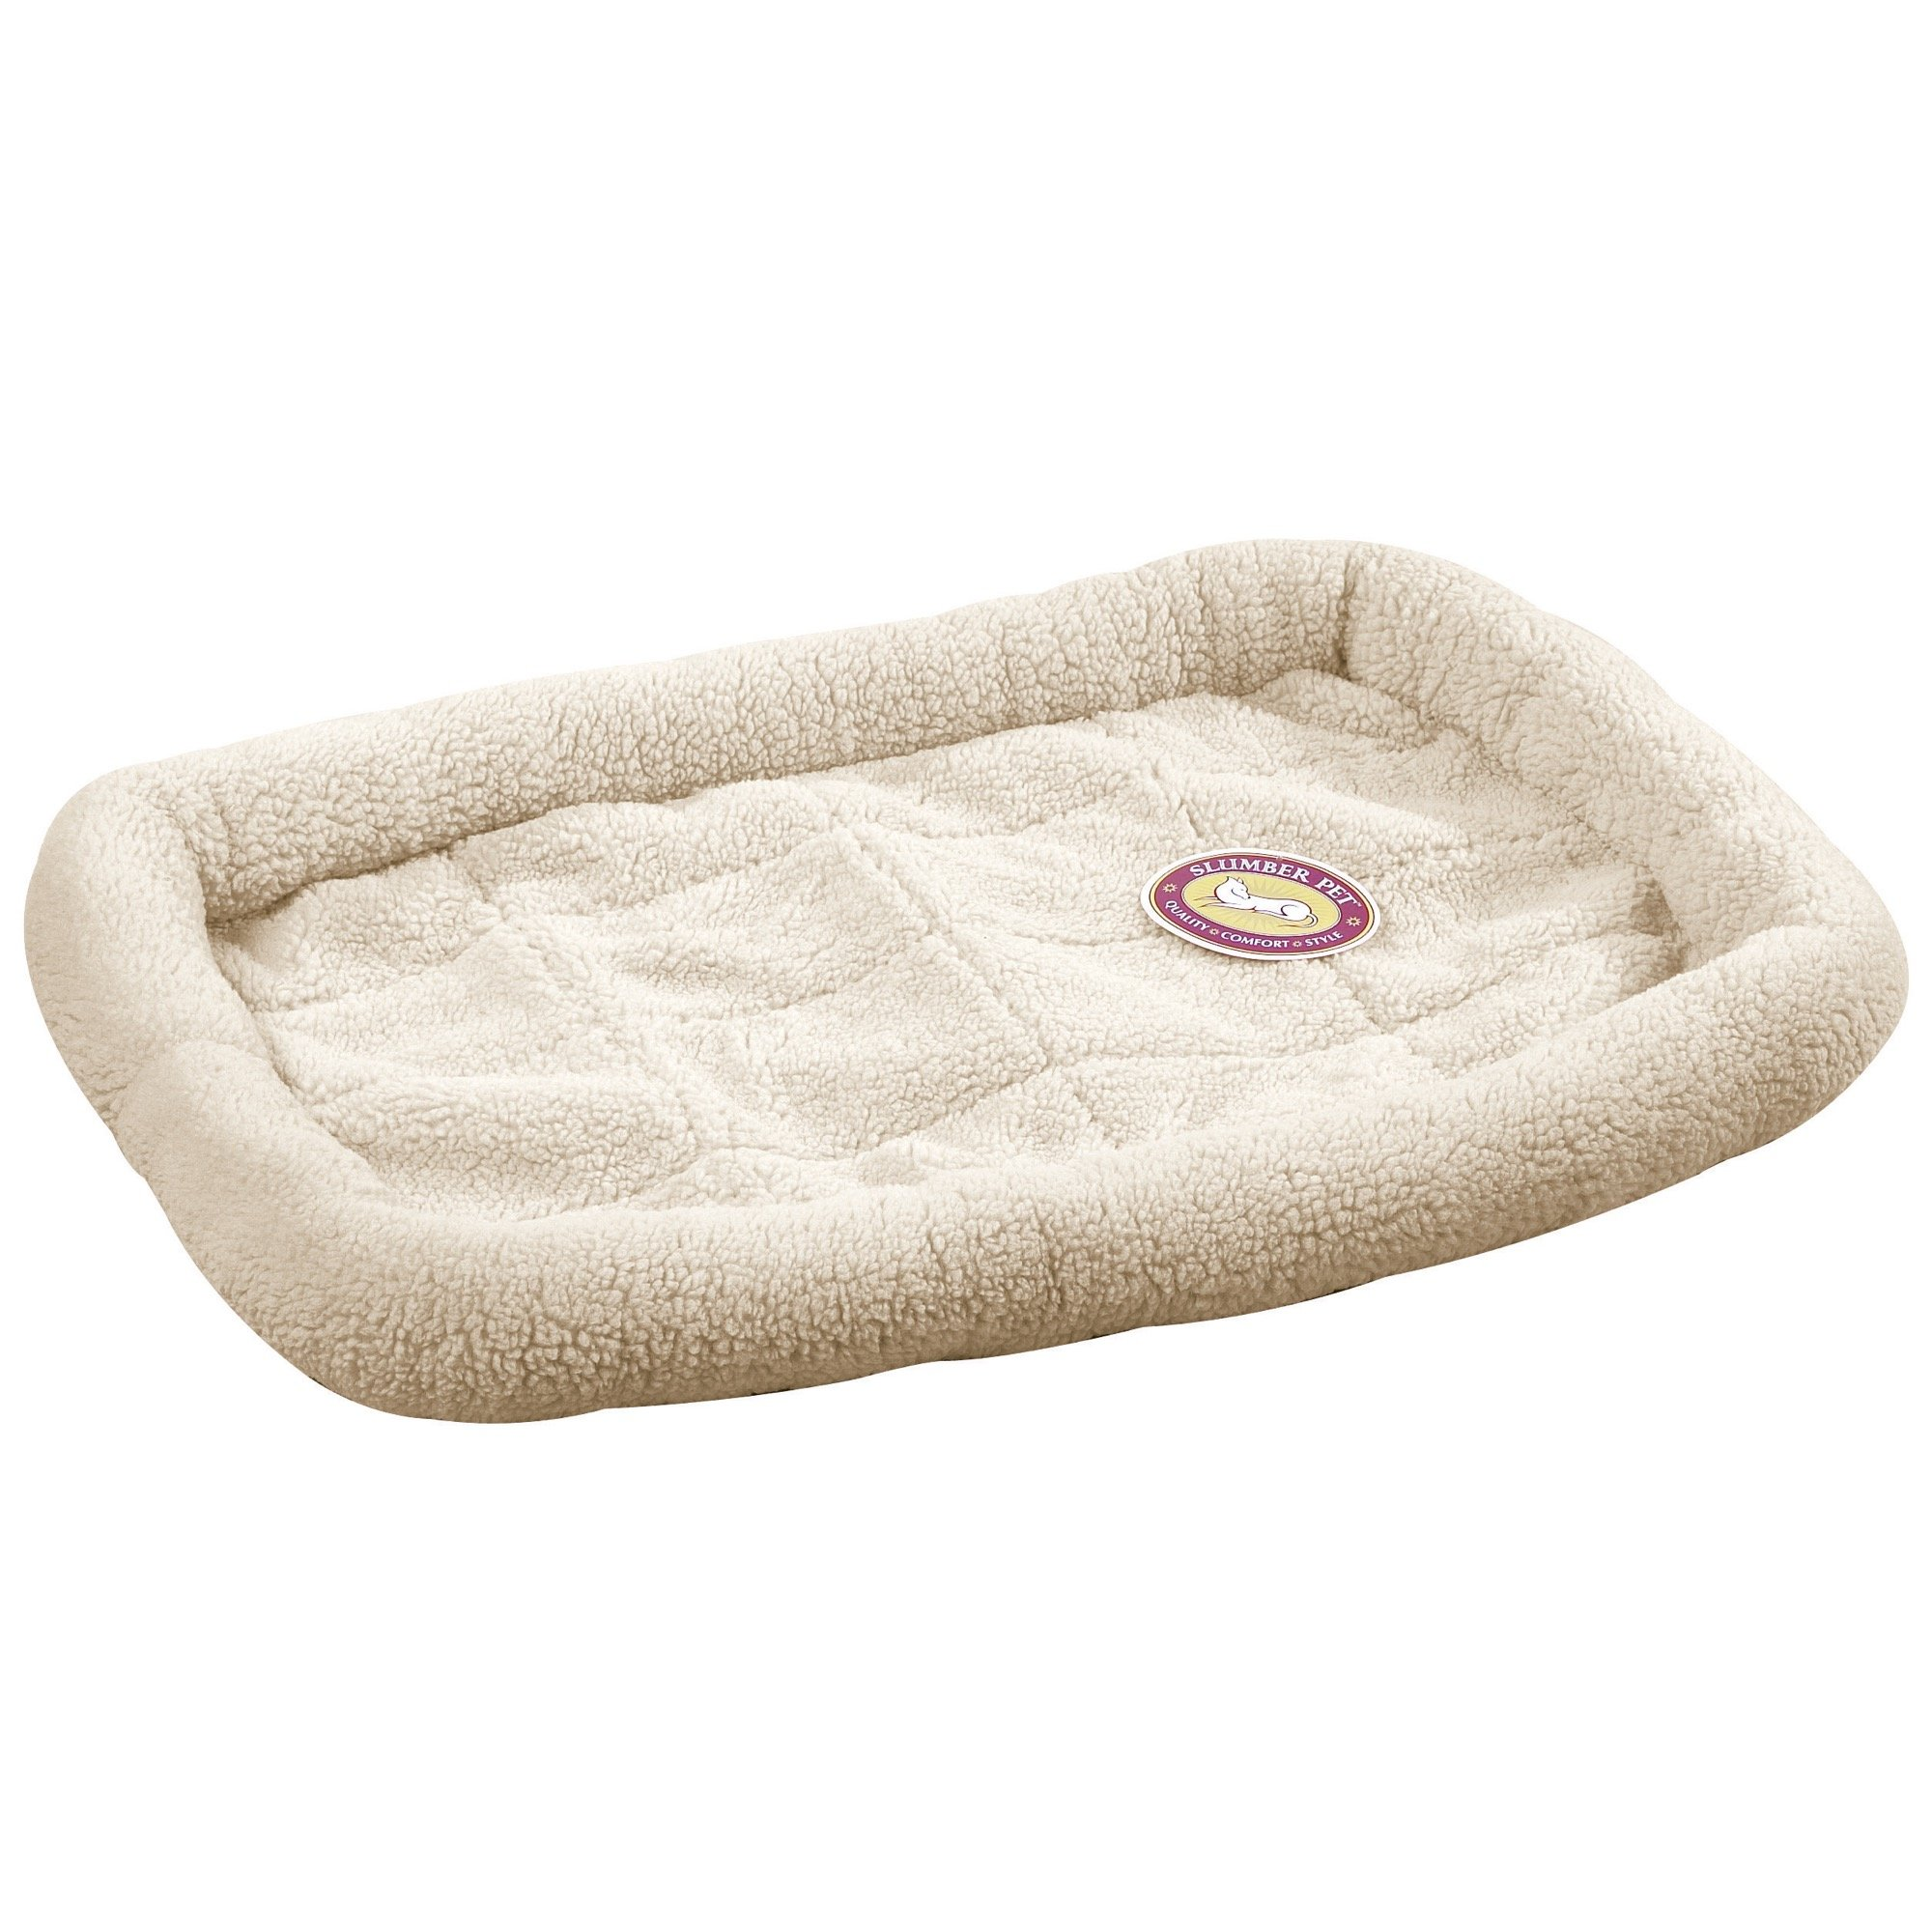 Slumber Pet Sherpa Crate Beds  - Comfortable Bumper-Style Beds for Dogs and Cats, Large, Natural Beige by Slumber Pet